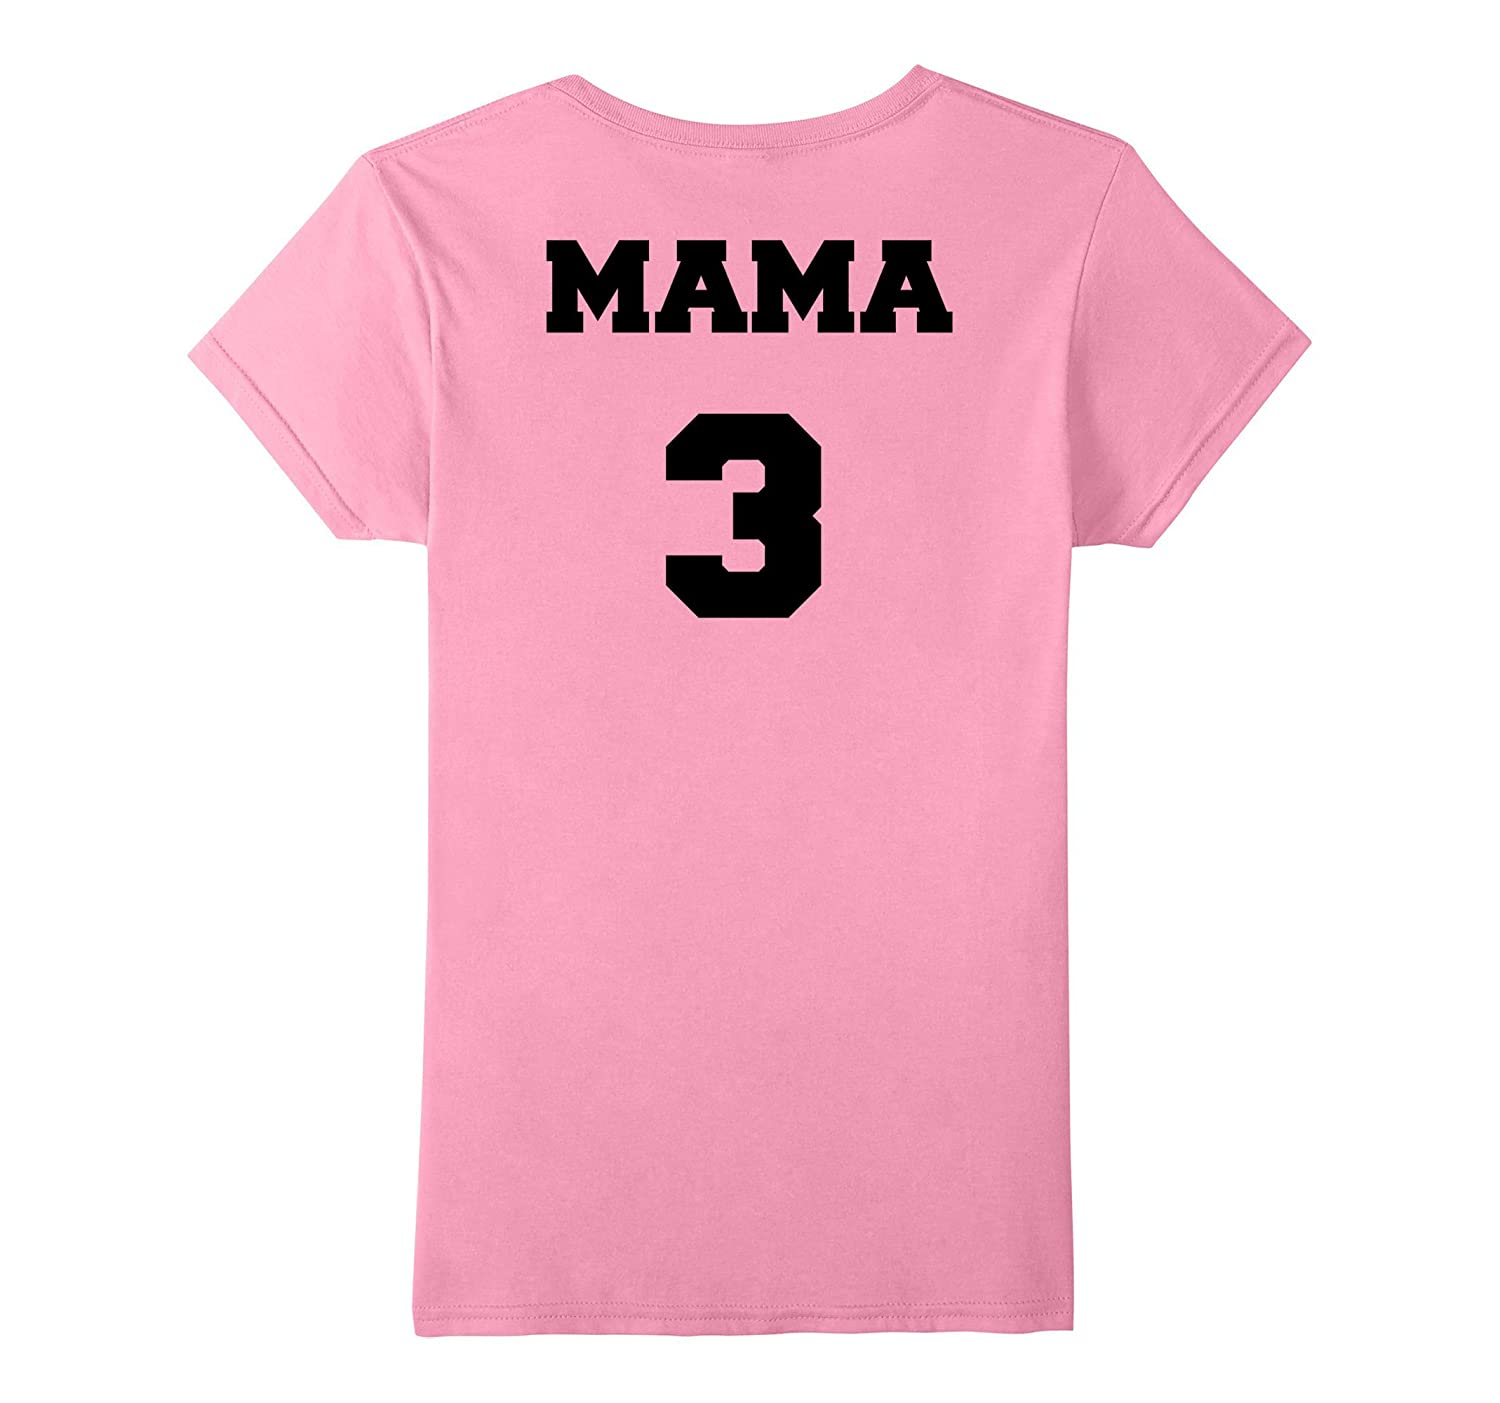 Womens MAMA matching Papa and Son T-shirt in football jersey style-FL